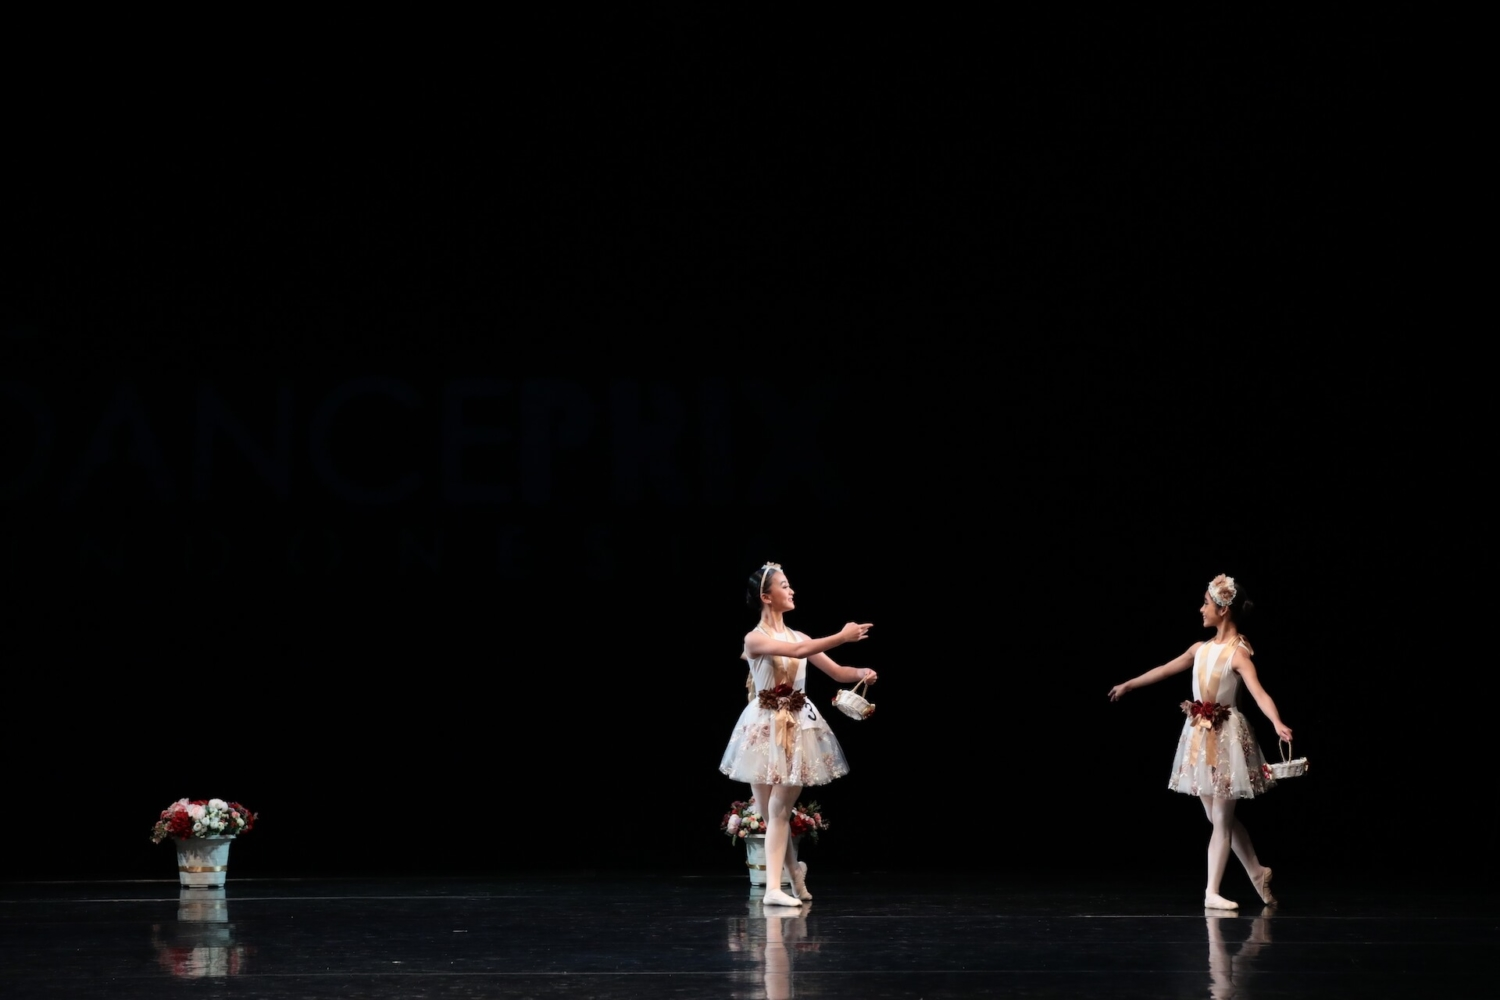 Dance Prix Indonesia 2019 – Ballet Group 1st Place, Marlupi Dance Academy Citra Raya